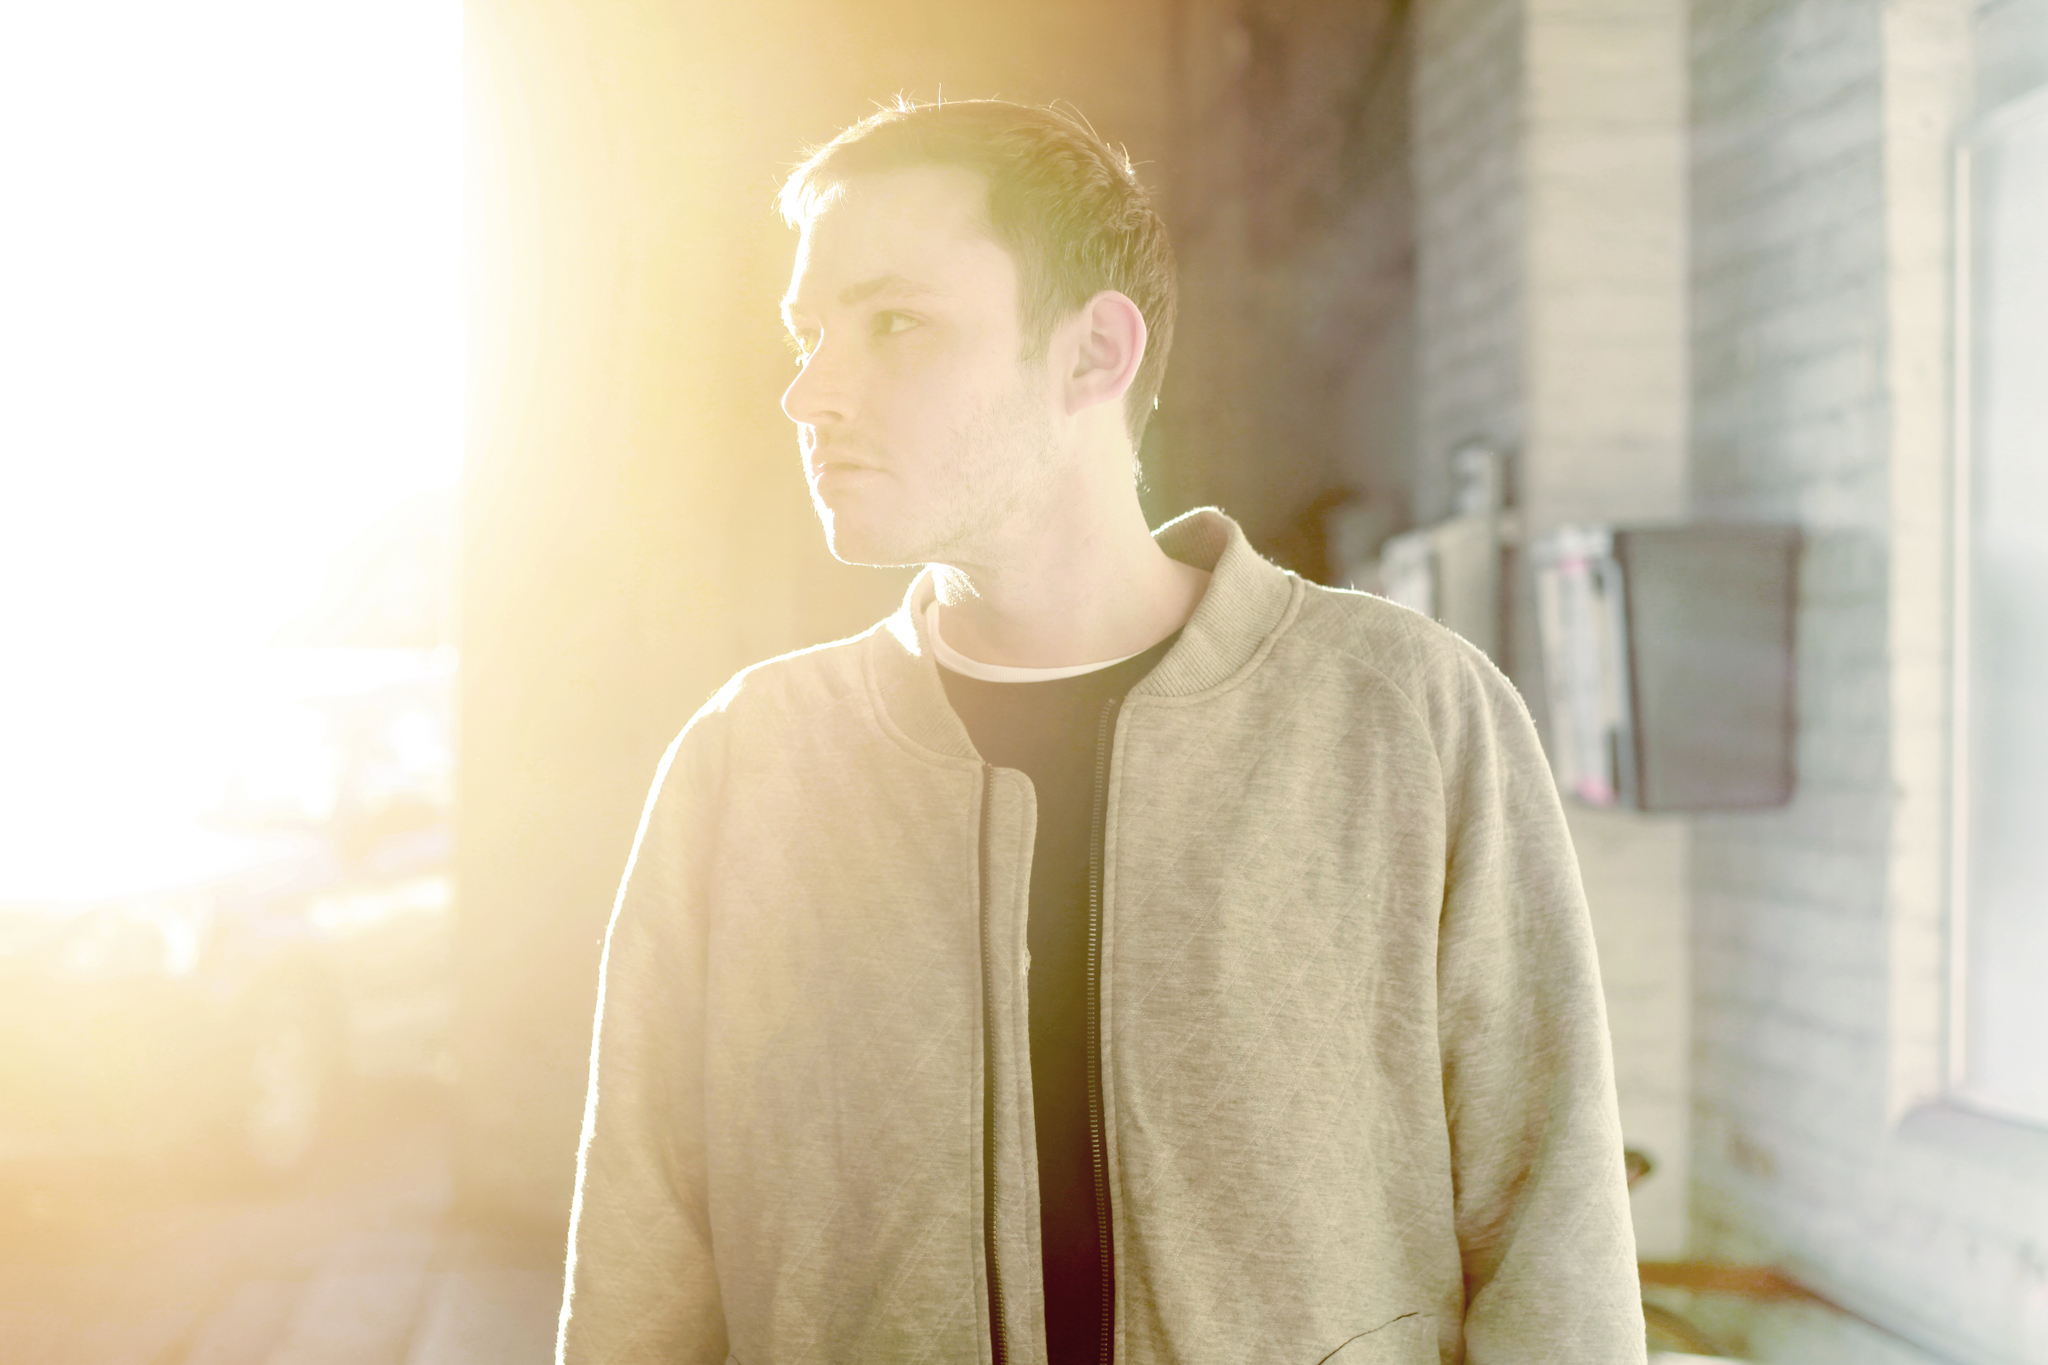 Hudson Mohawke talks Kanye, the paparazzi and his new solo record